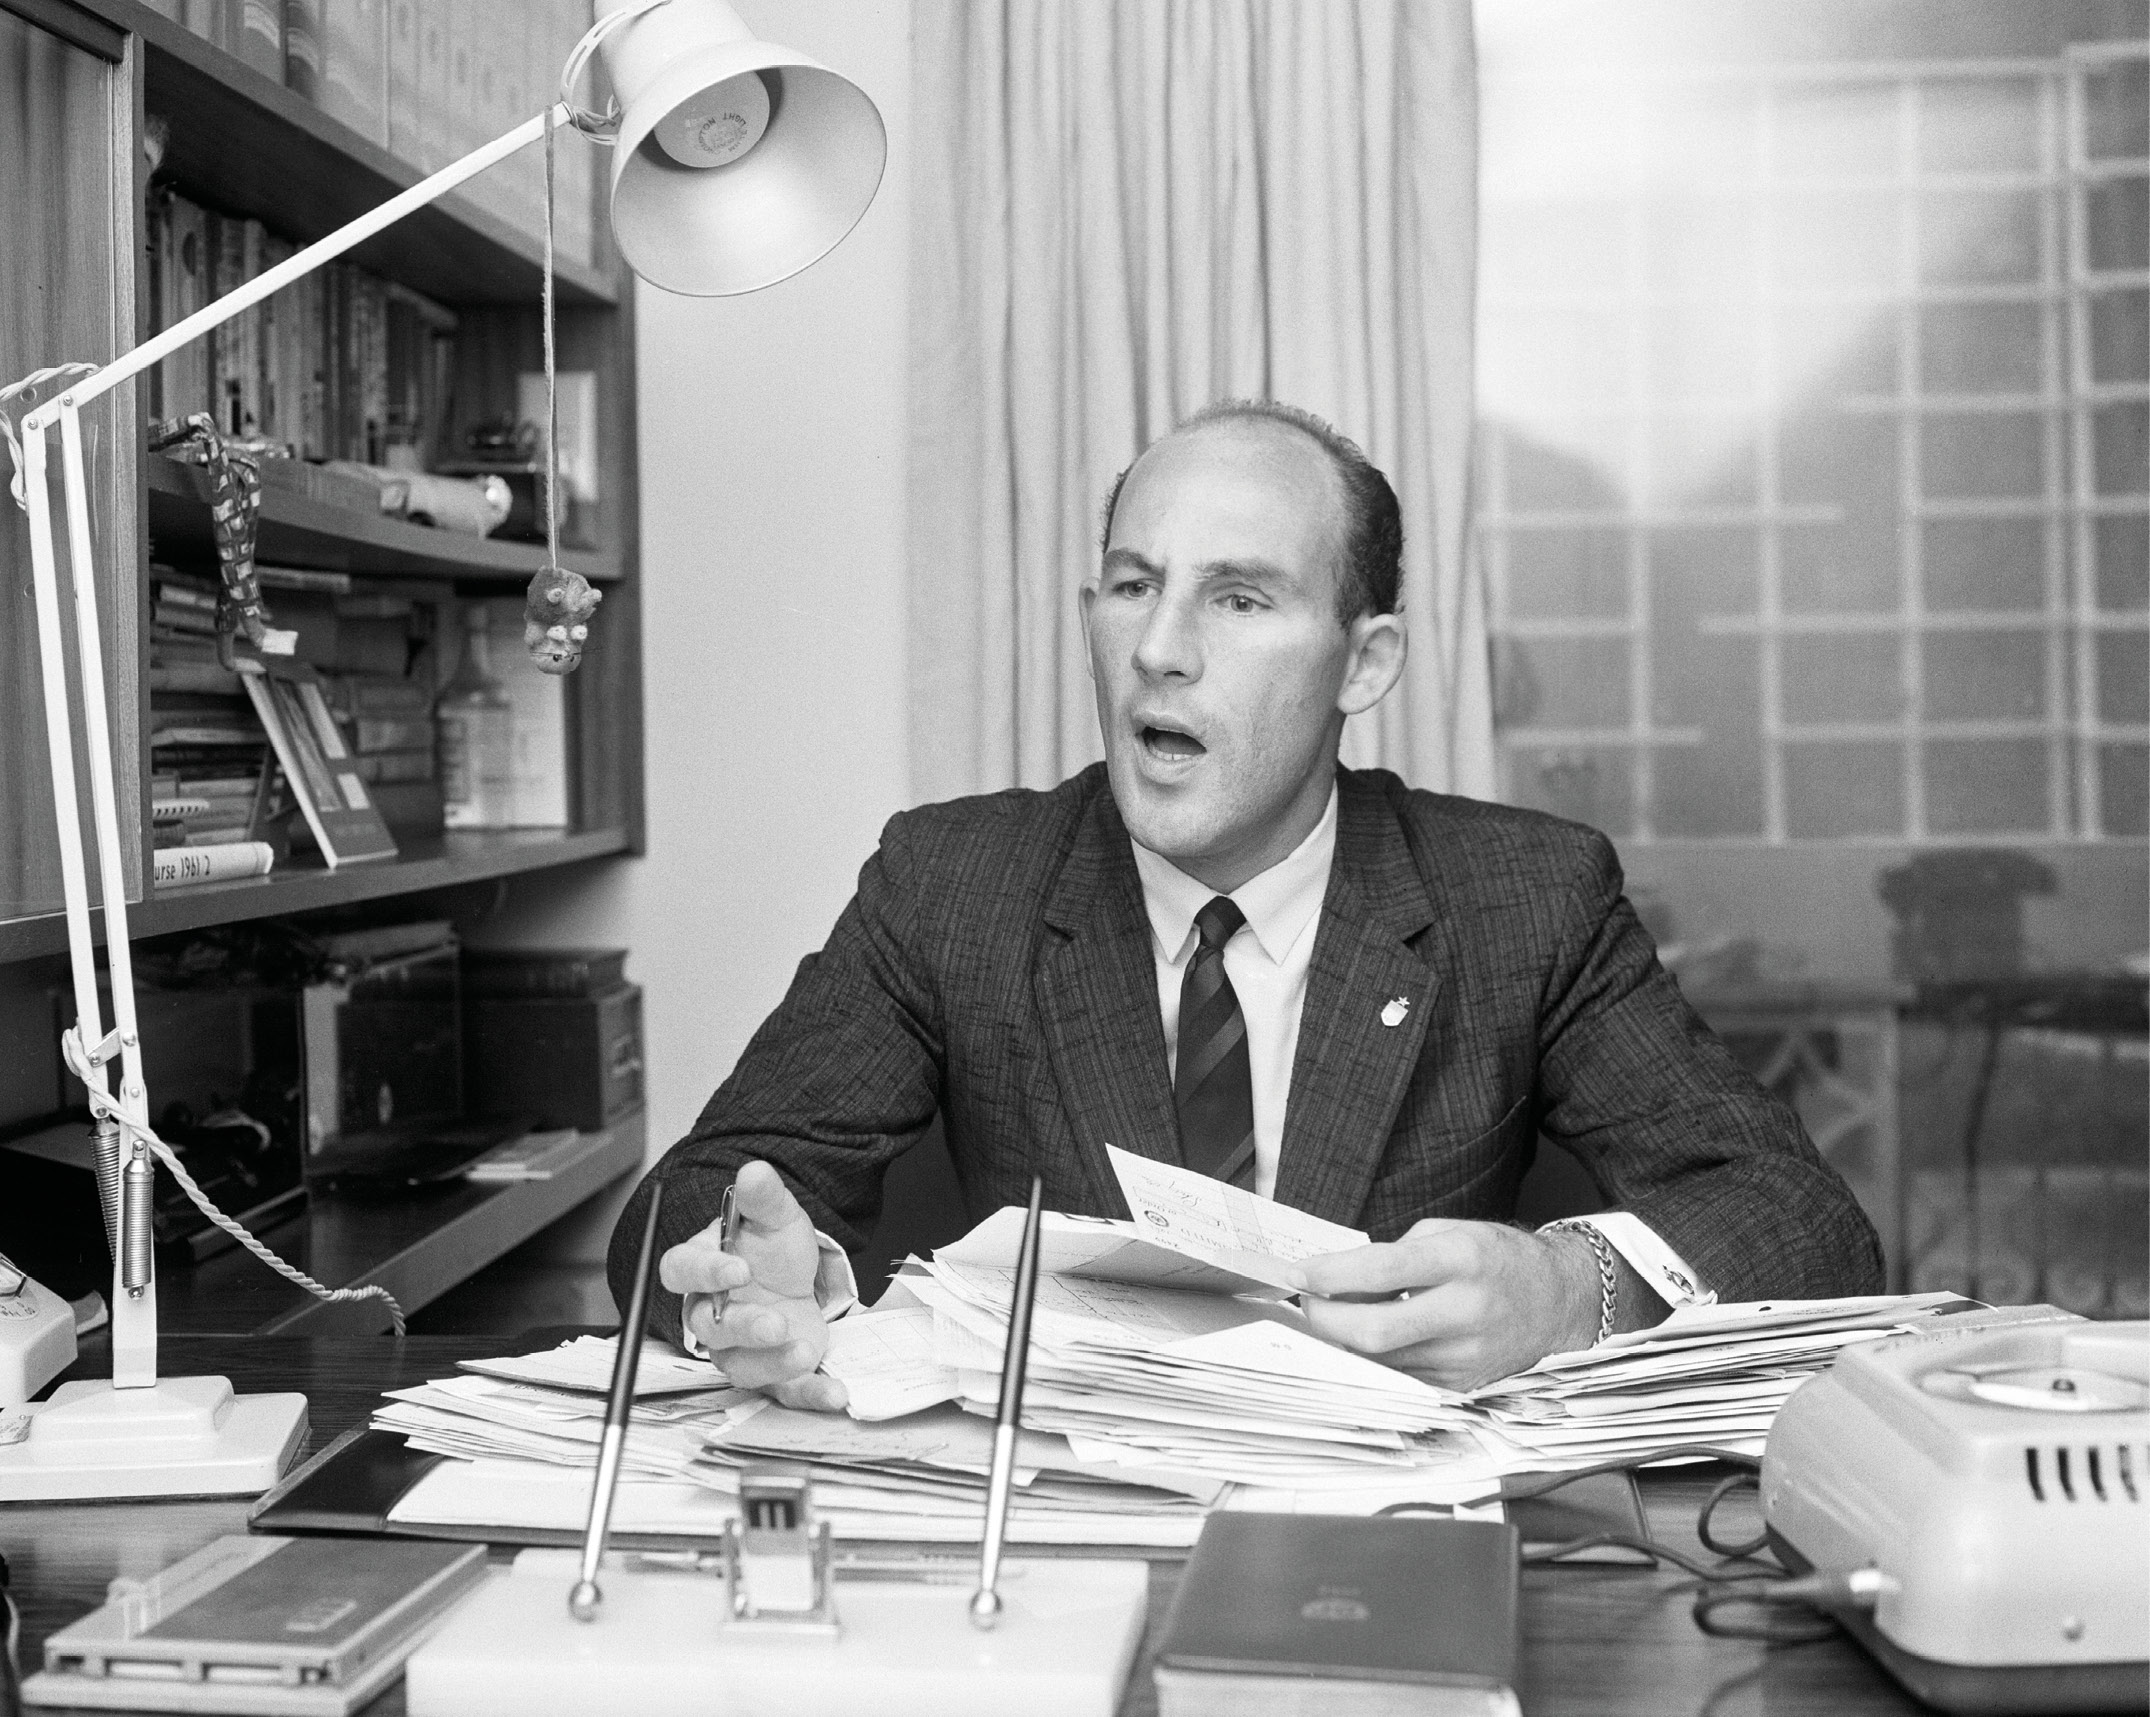 Stirling Moss in his office not long after his Goodwood crash in 1962